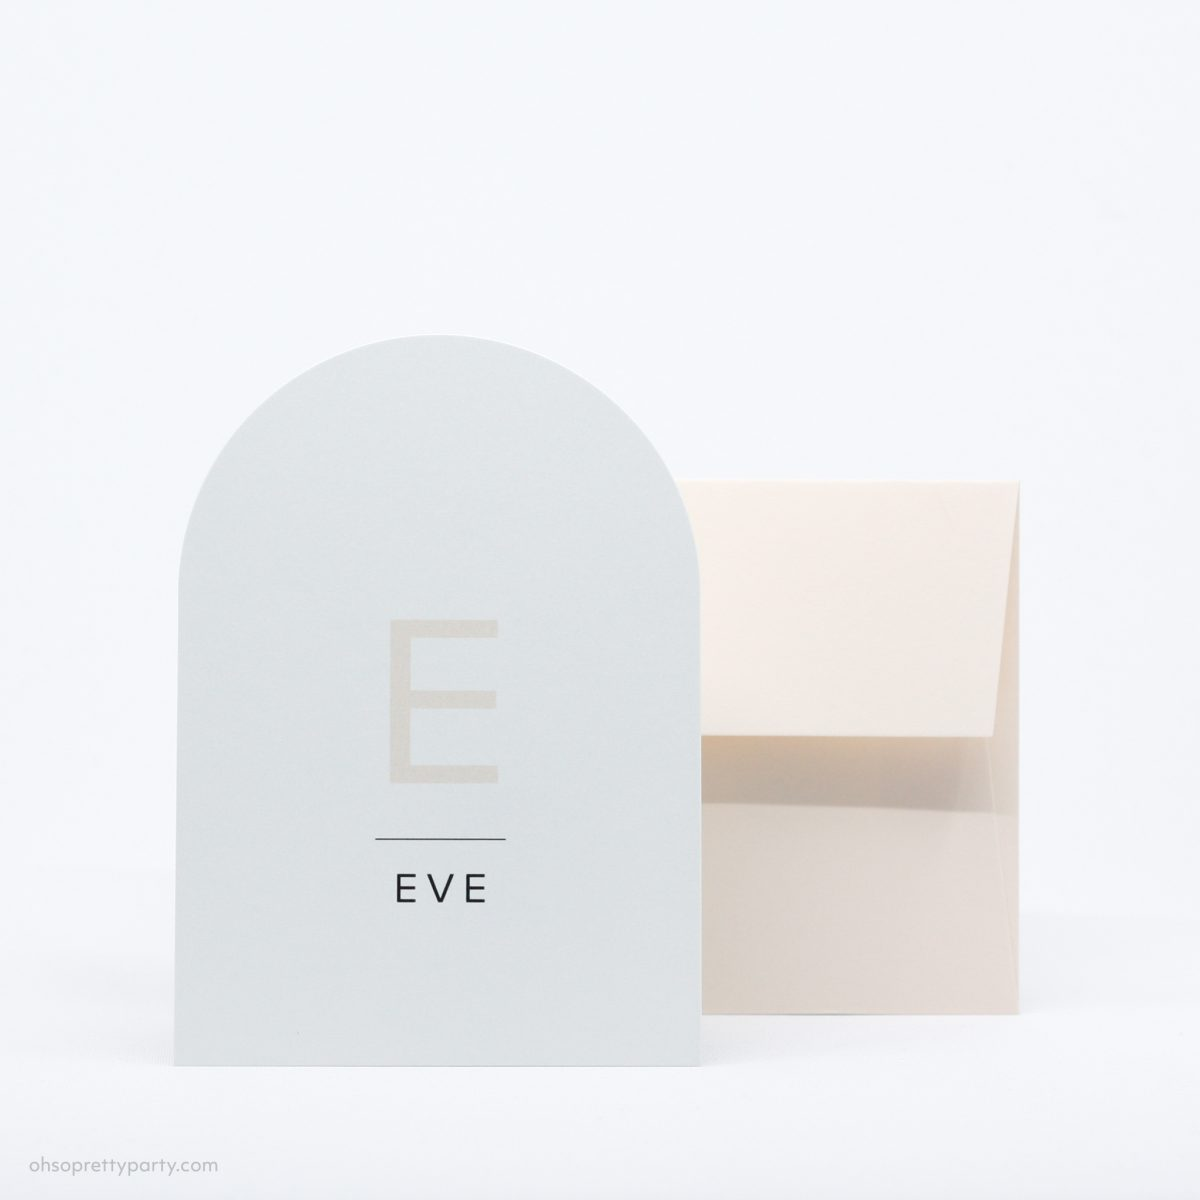 Preview Eve